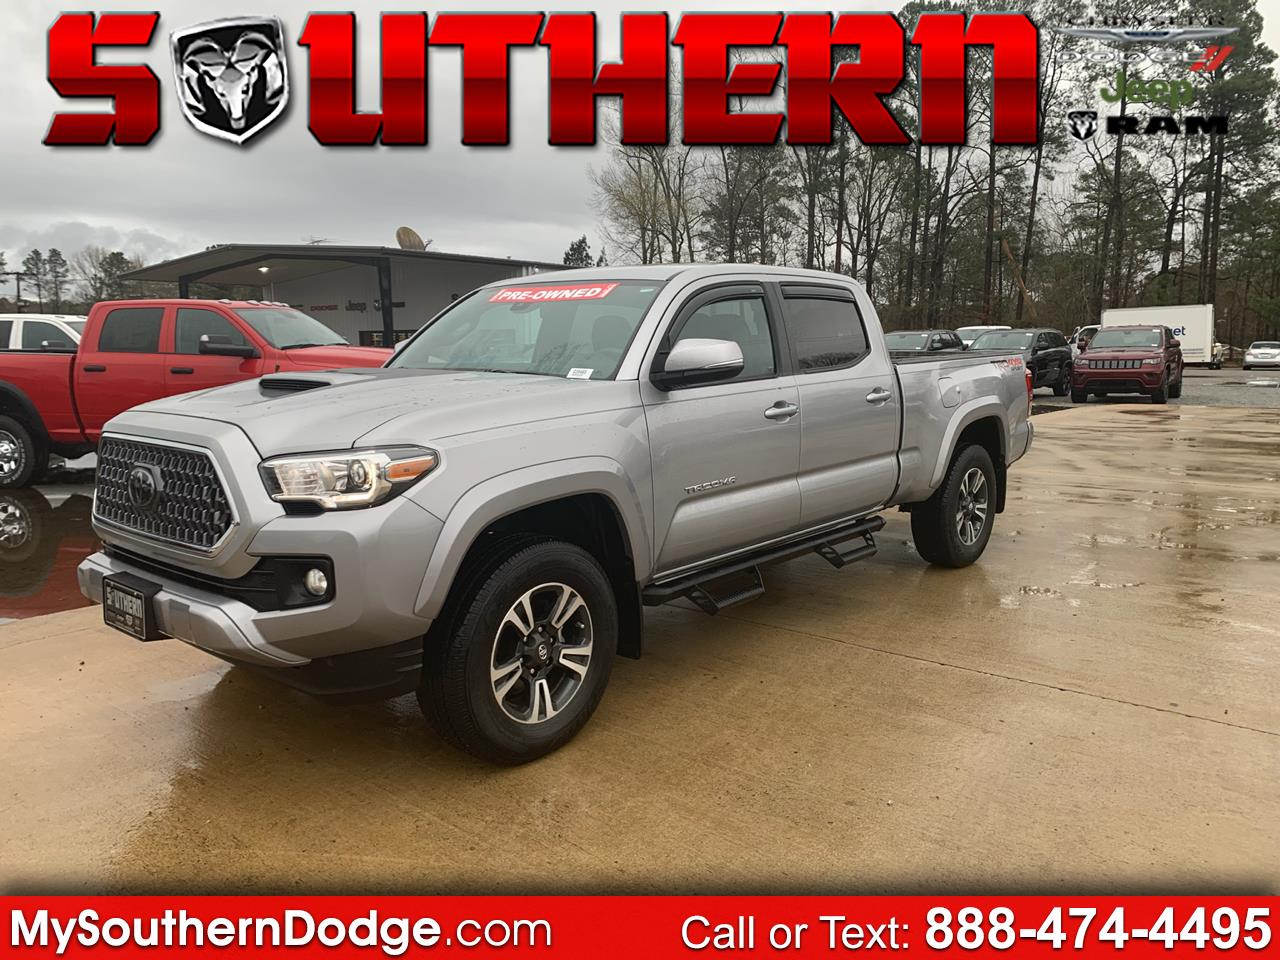 2018 Toyota Tacoma TRD Sport Access Cab 6' Bed V6 4x2 AT (Natl)